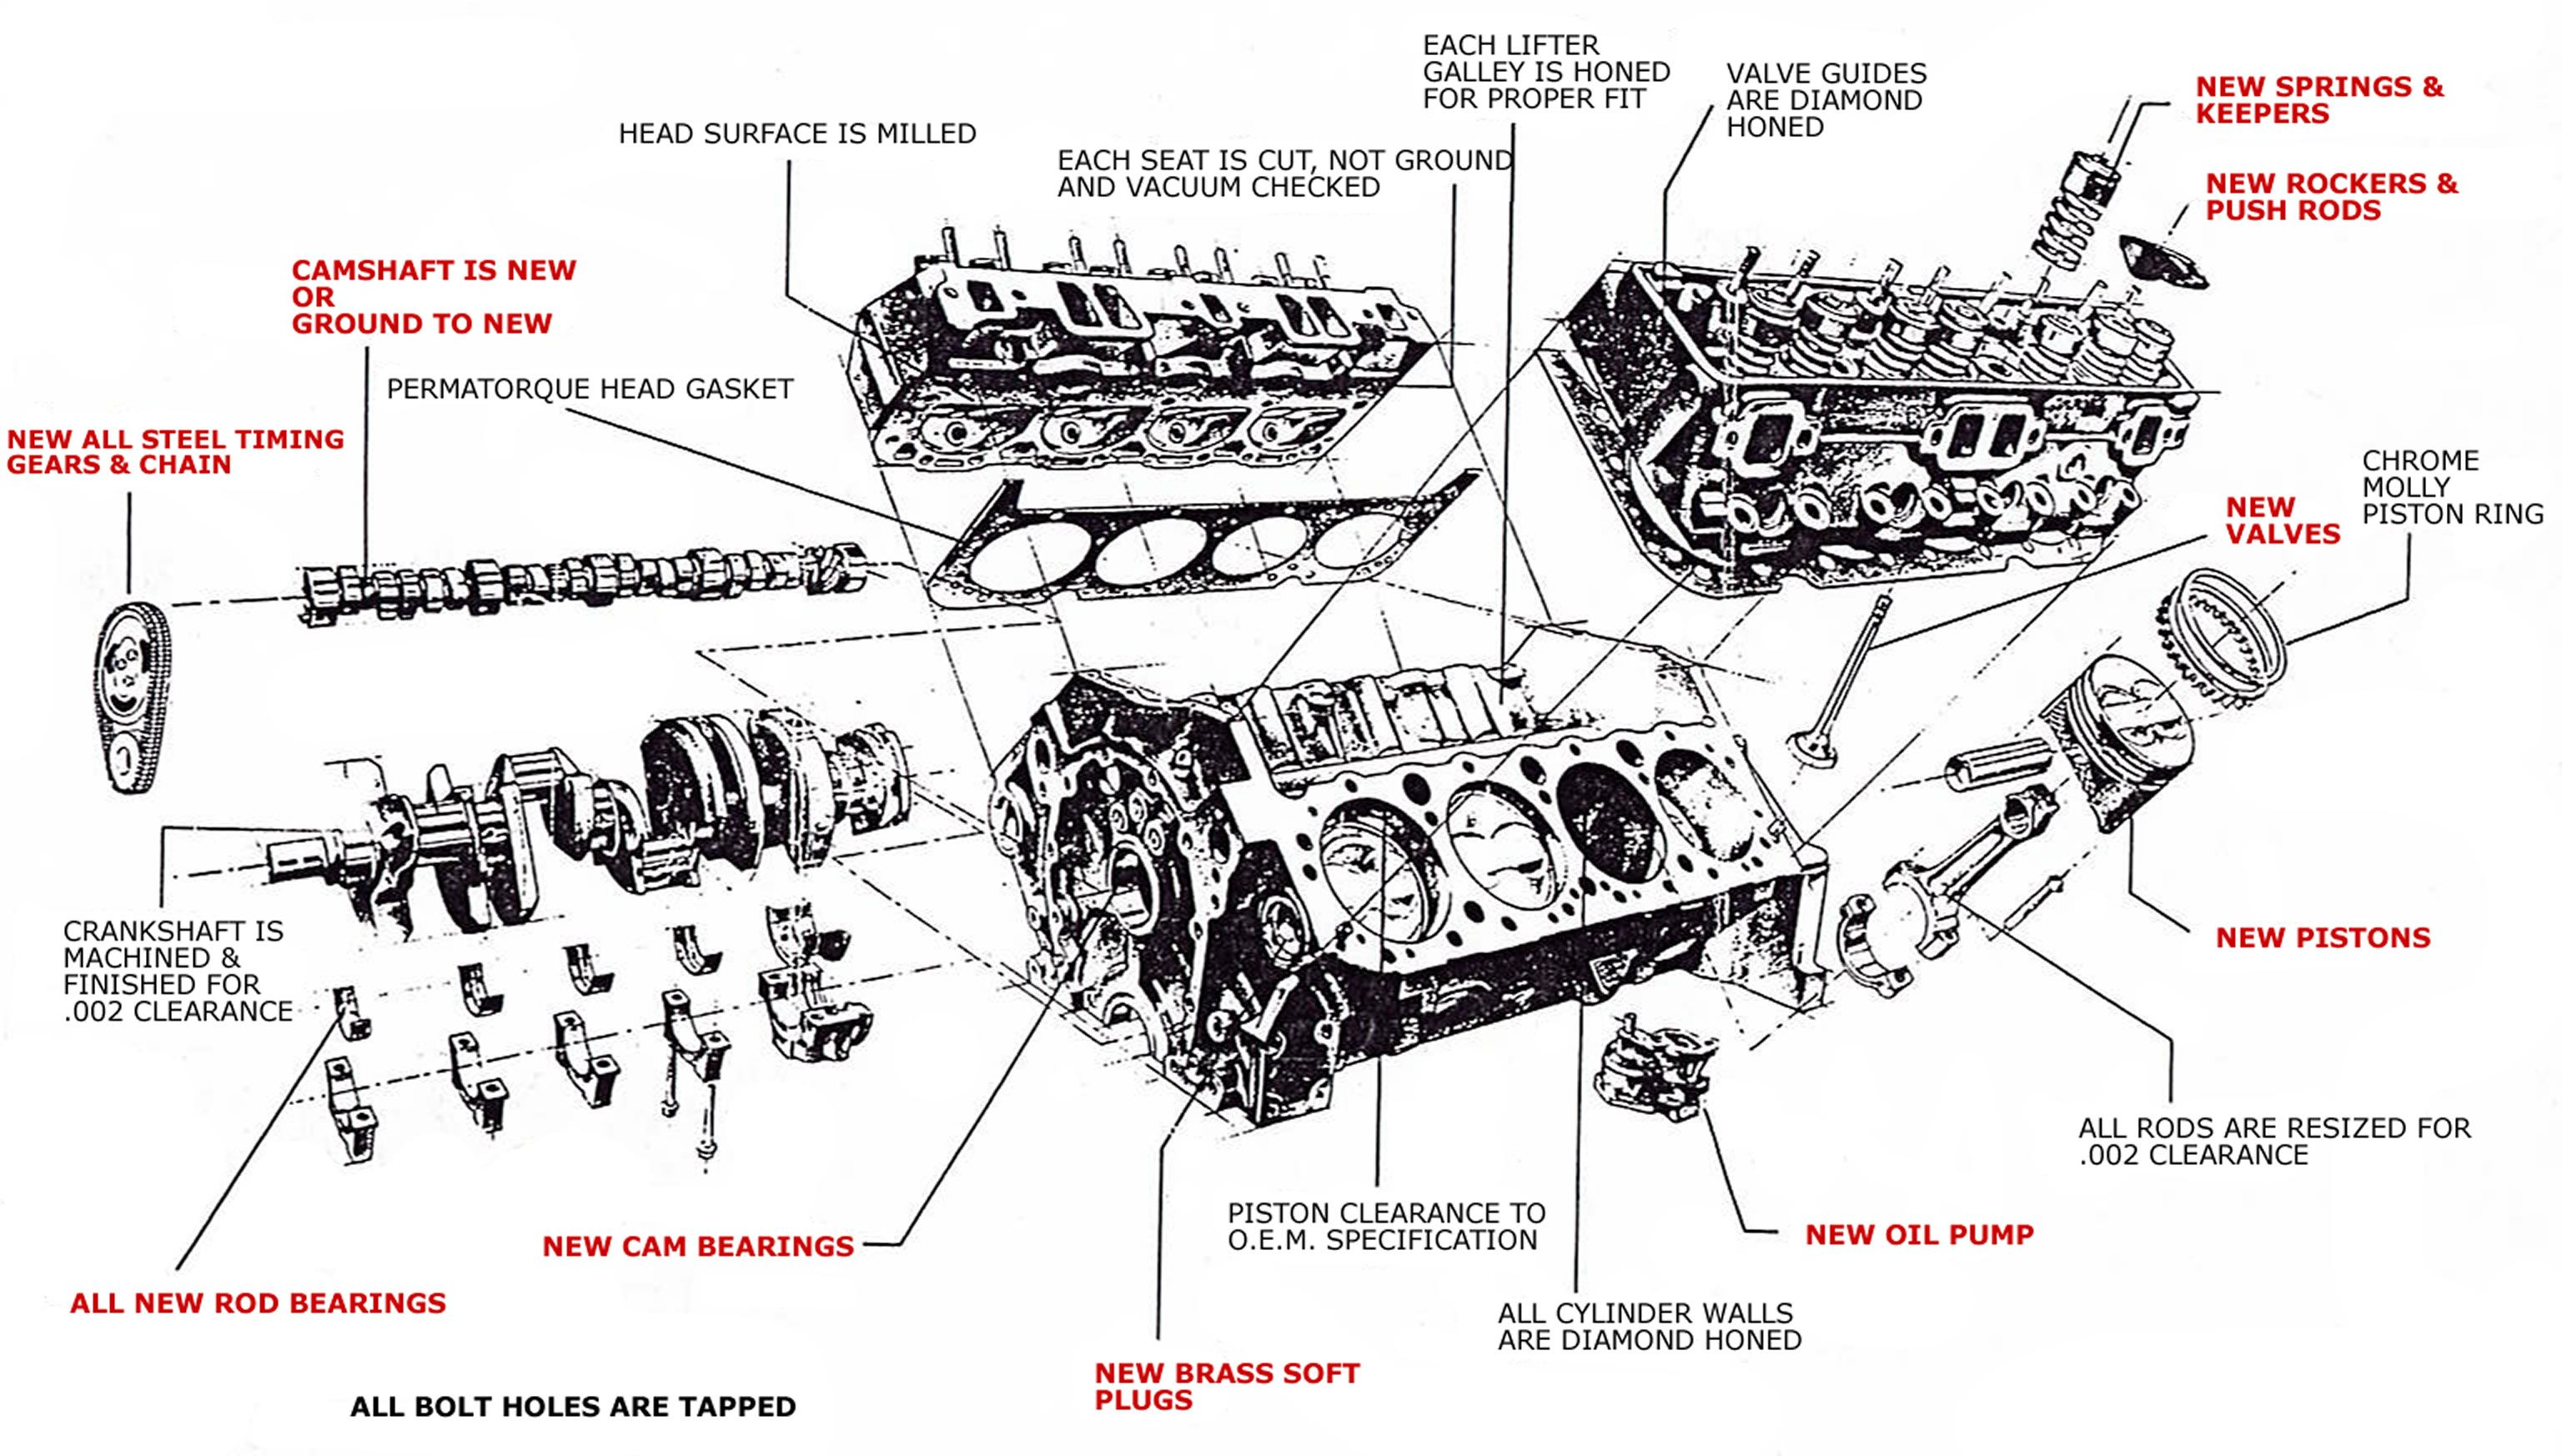 medium resolution of image result for exploded view of cummins nta 855 engineimage result for exploded view of cummins